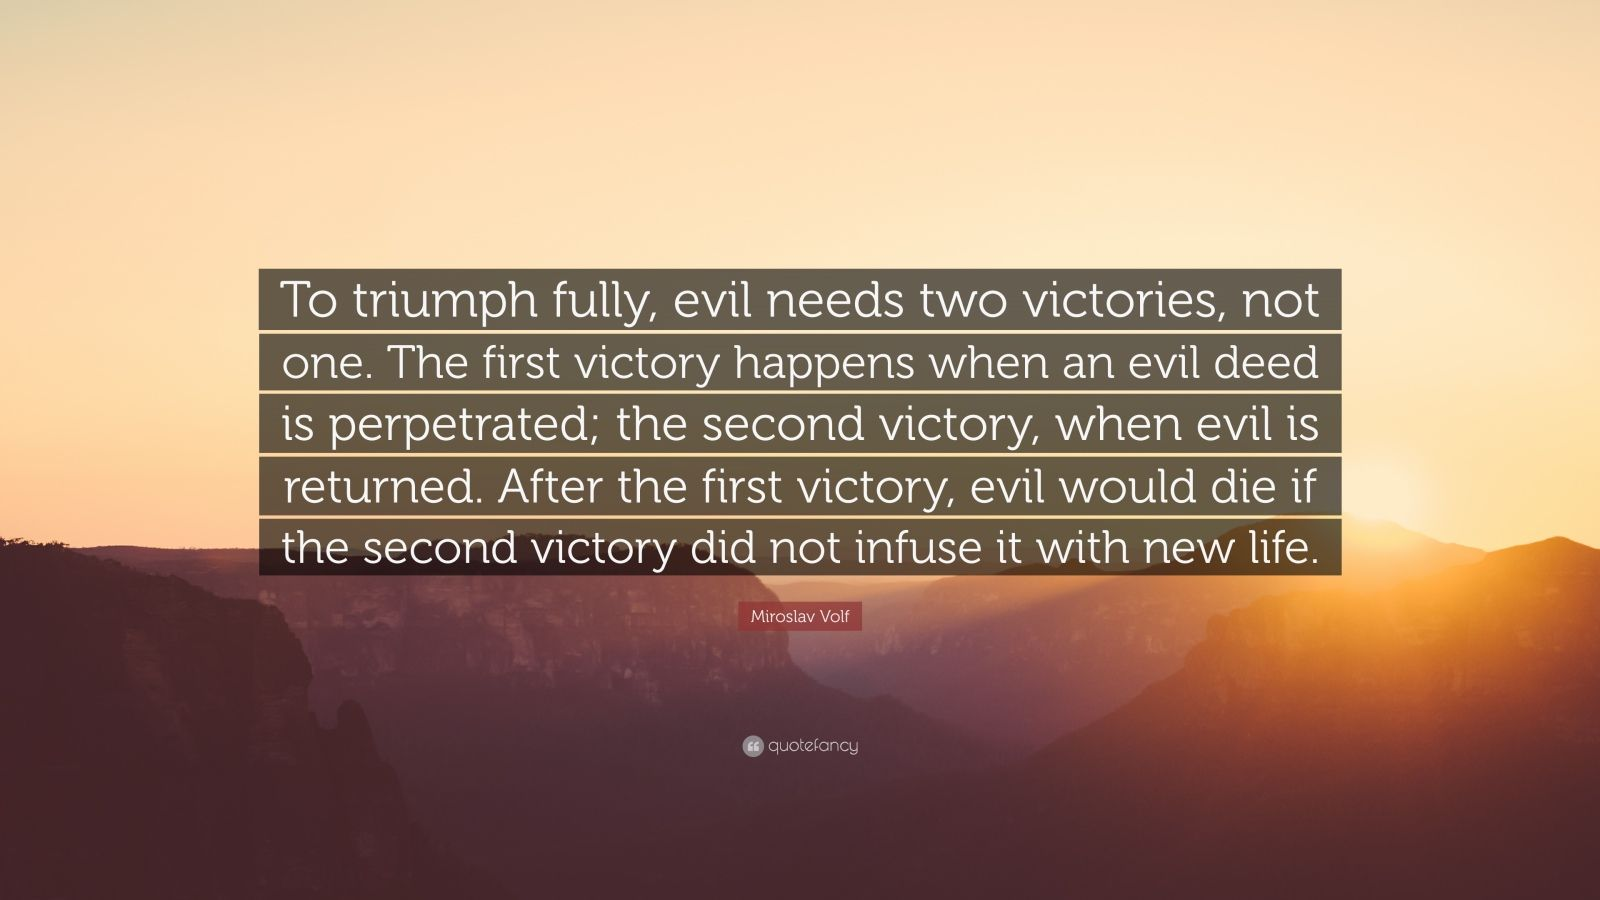 """Miroslav Volf Quote: """"To triumph fully, evil needs two victories, not one. The first victory happens when an evil deed is perpetrated; the second victory, when evil is returned. After the first victory, evil would die if the second victory did not infuse it with new life."""""""